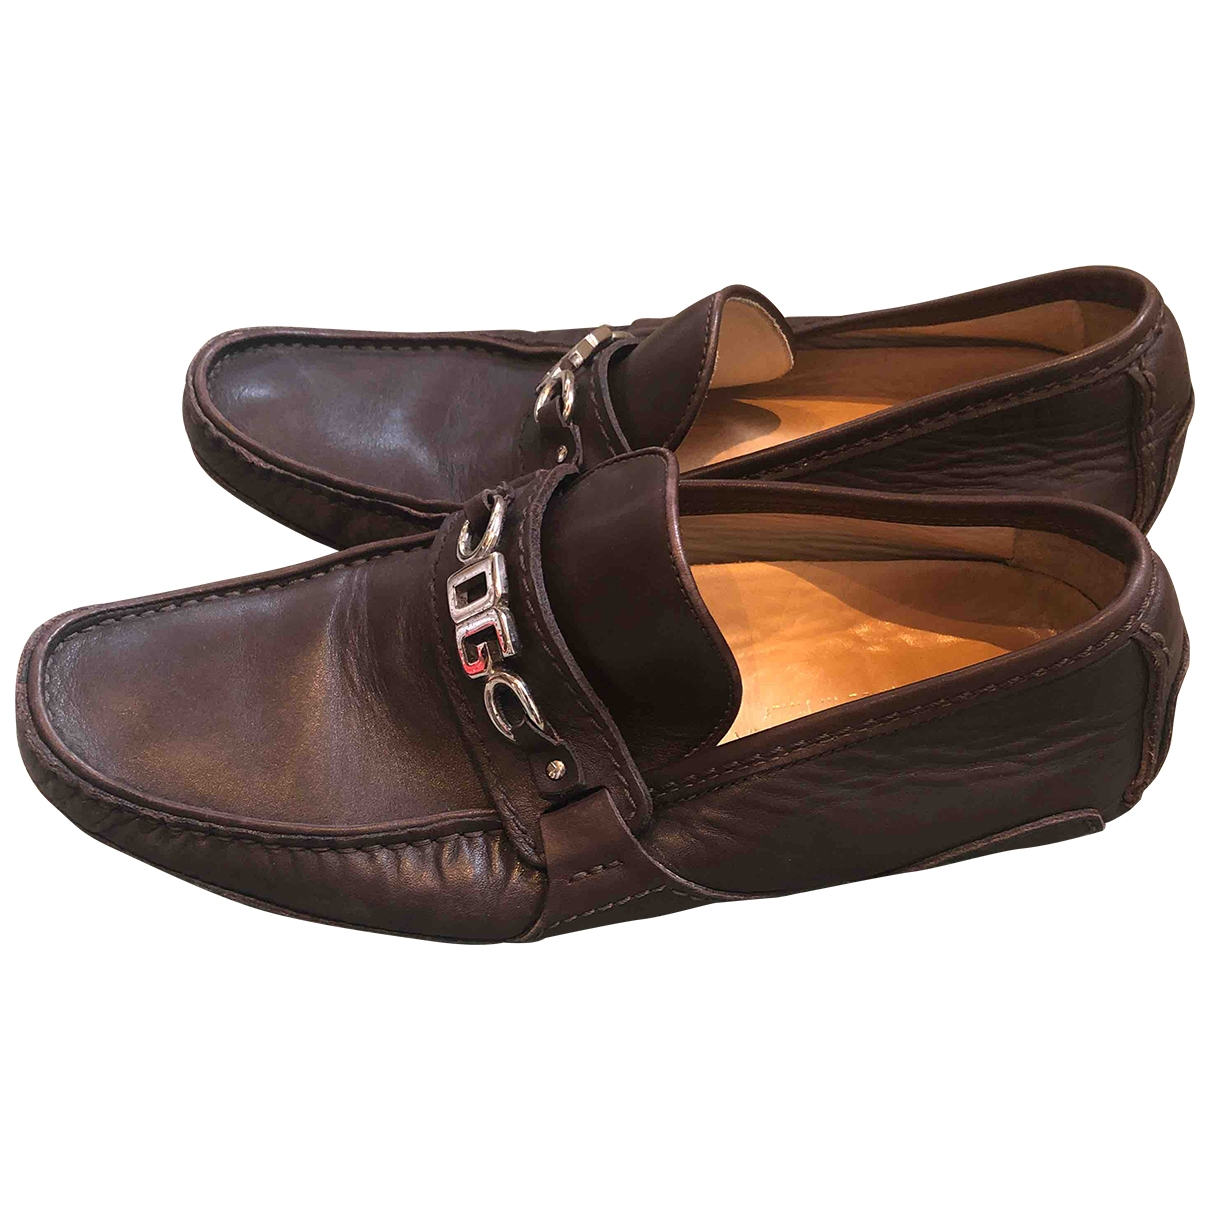 Dolce & Gabbana \N Brown Leather Flats for Men 6 UK